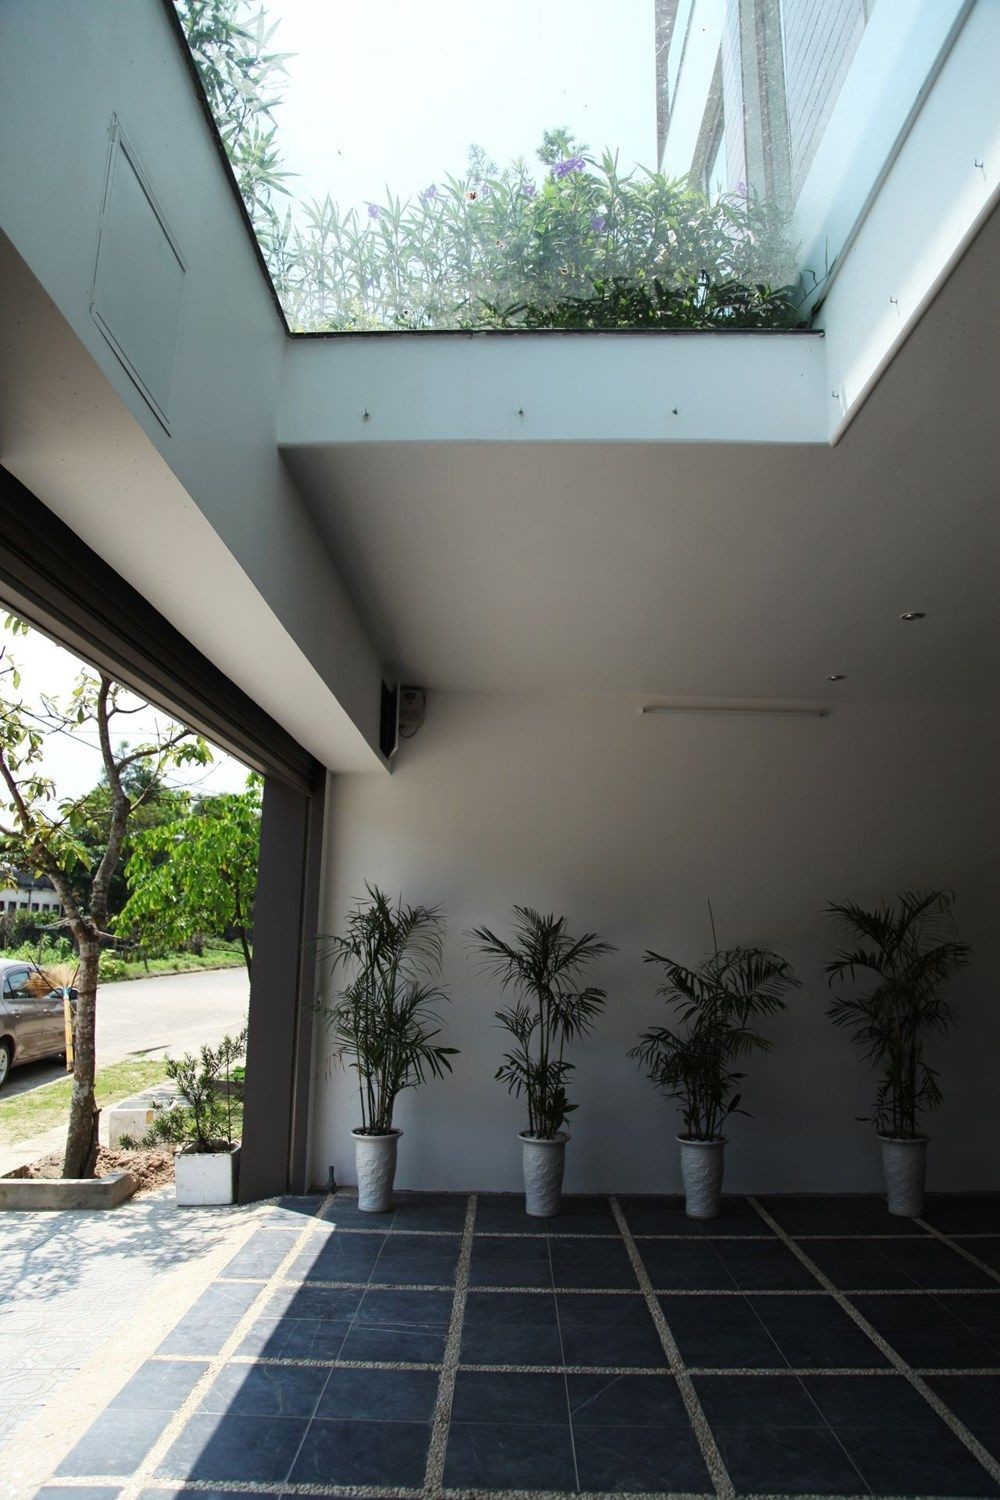 Letting Natural Light In House No 47 By H P Architects Car Porch Design House With Porch House Renovation Design